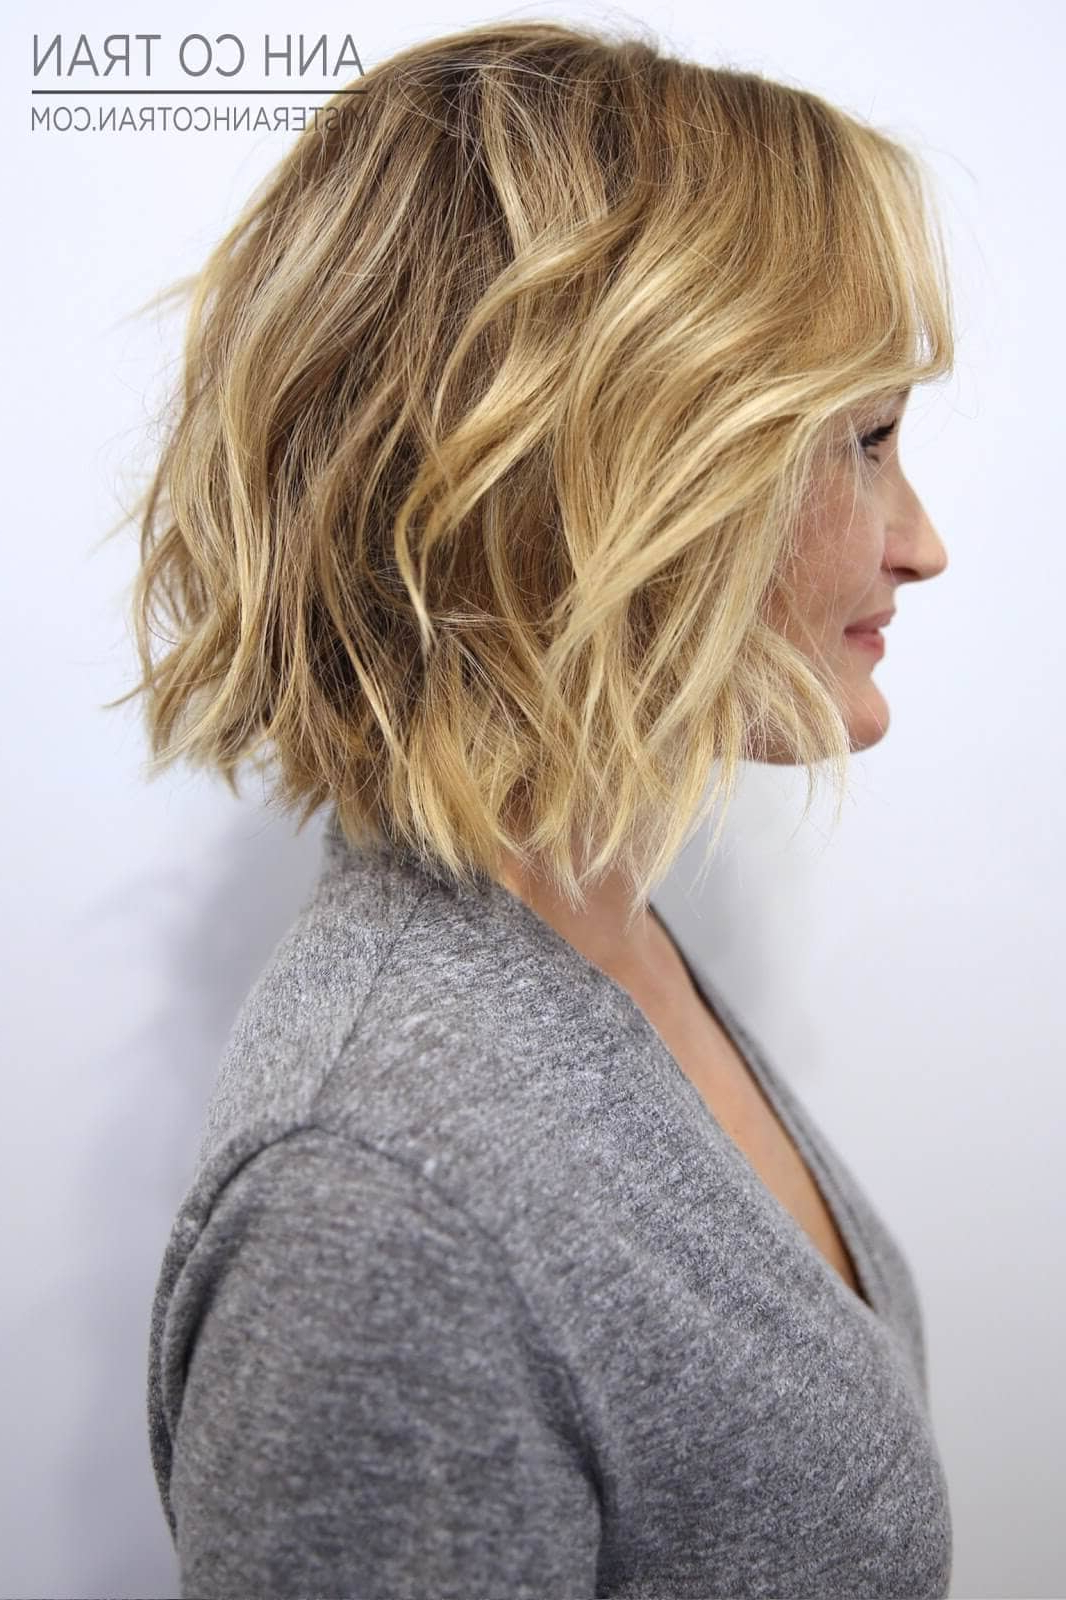 50 Ways To Wear Short Hair With Bangs For A Fresh New Look For Adorable Wavy Bob Hairstyles (Gallery 12 of 20)